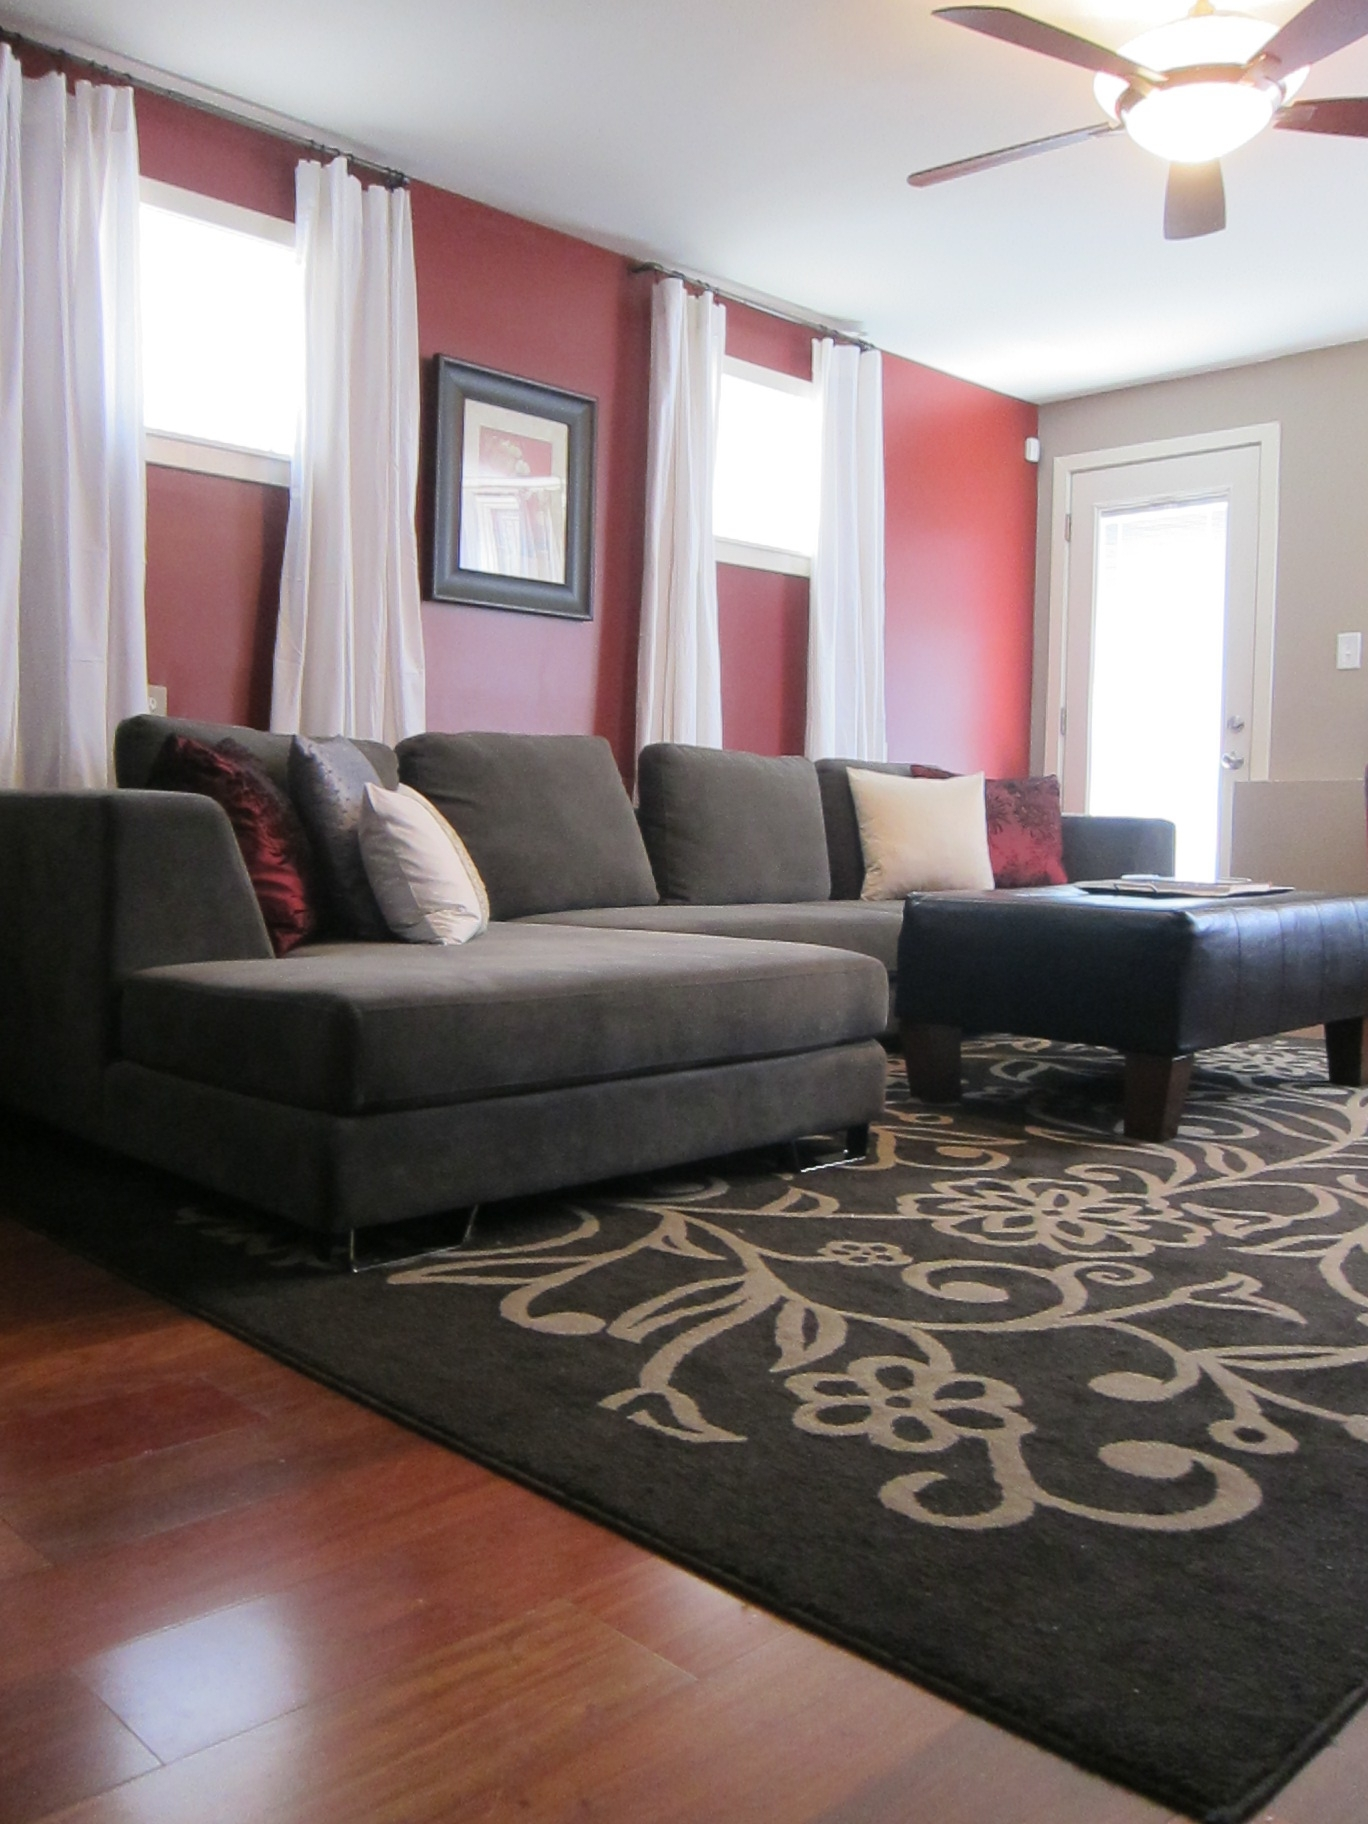 A Philadelphia Tv Host's Home! Complete With A Red Accent Wall Regarding Most Up To Date Wall Accents Behind Tv Or Couch (View 8 of 15)